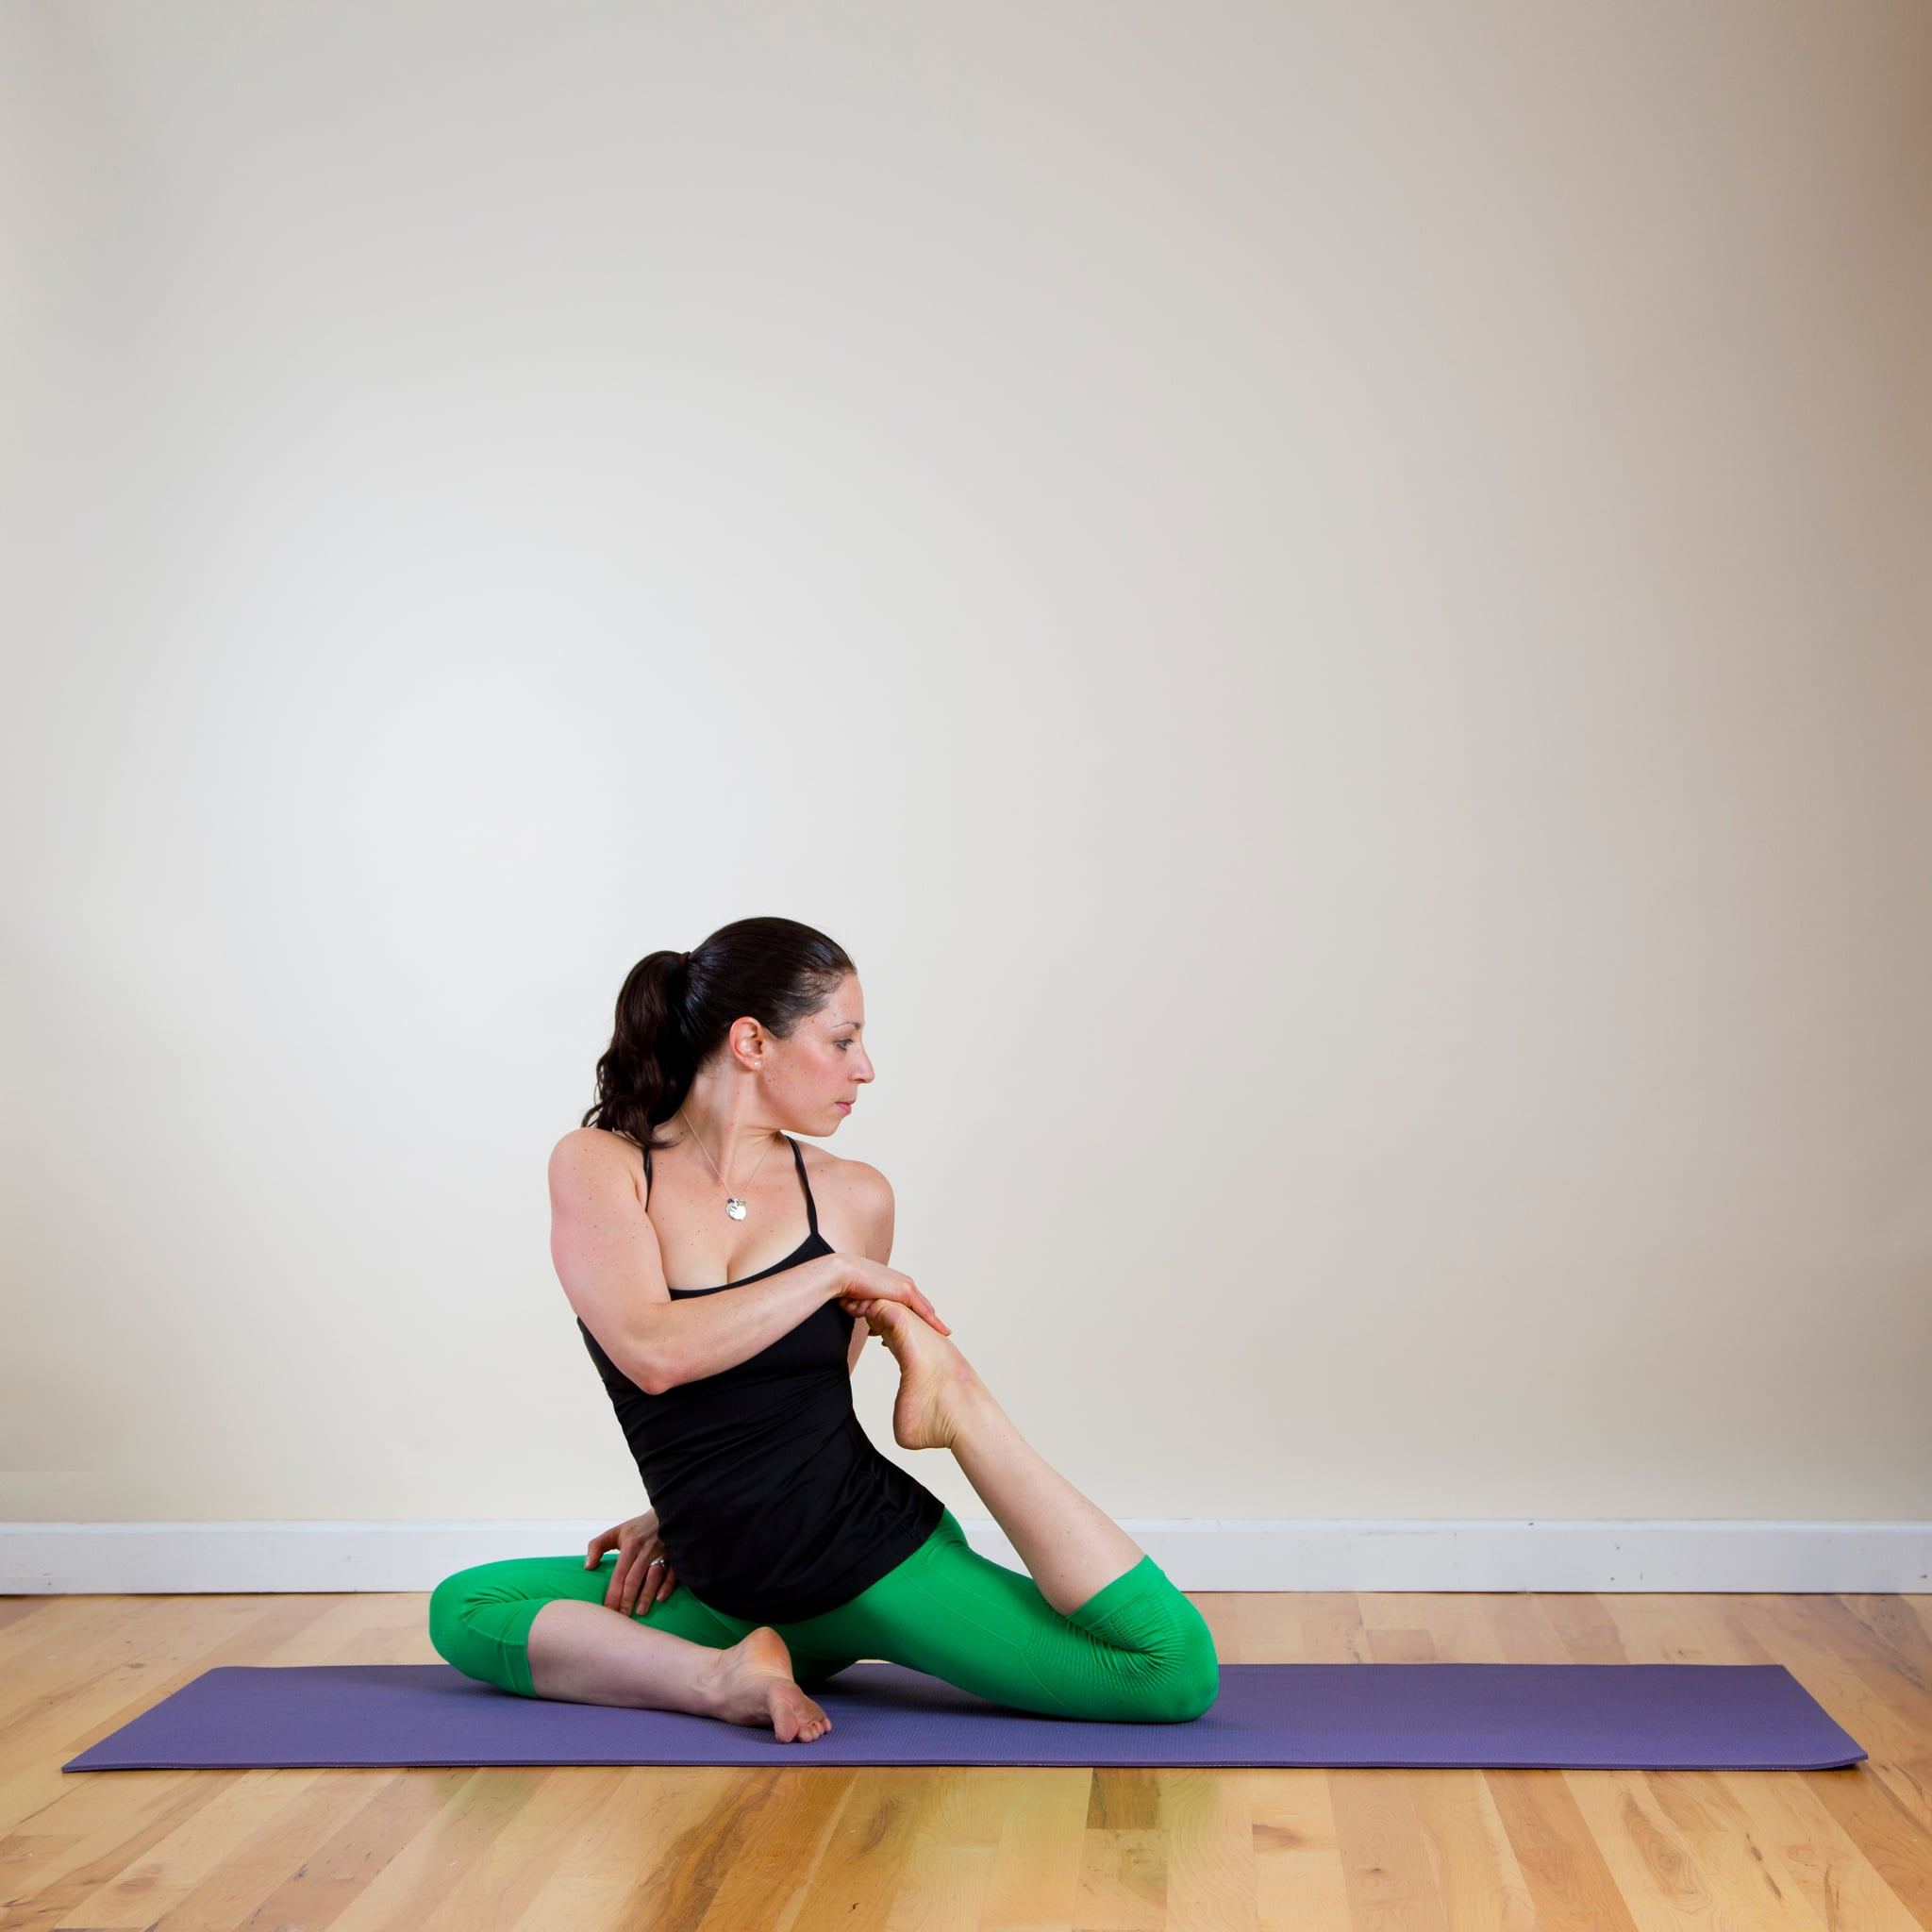 Yoga Twist Poses For The Back And Spine Popsugar Fitness